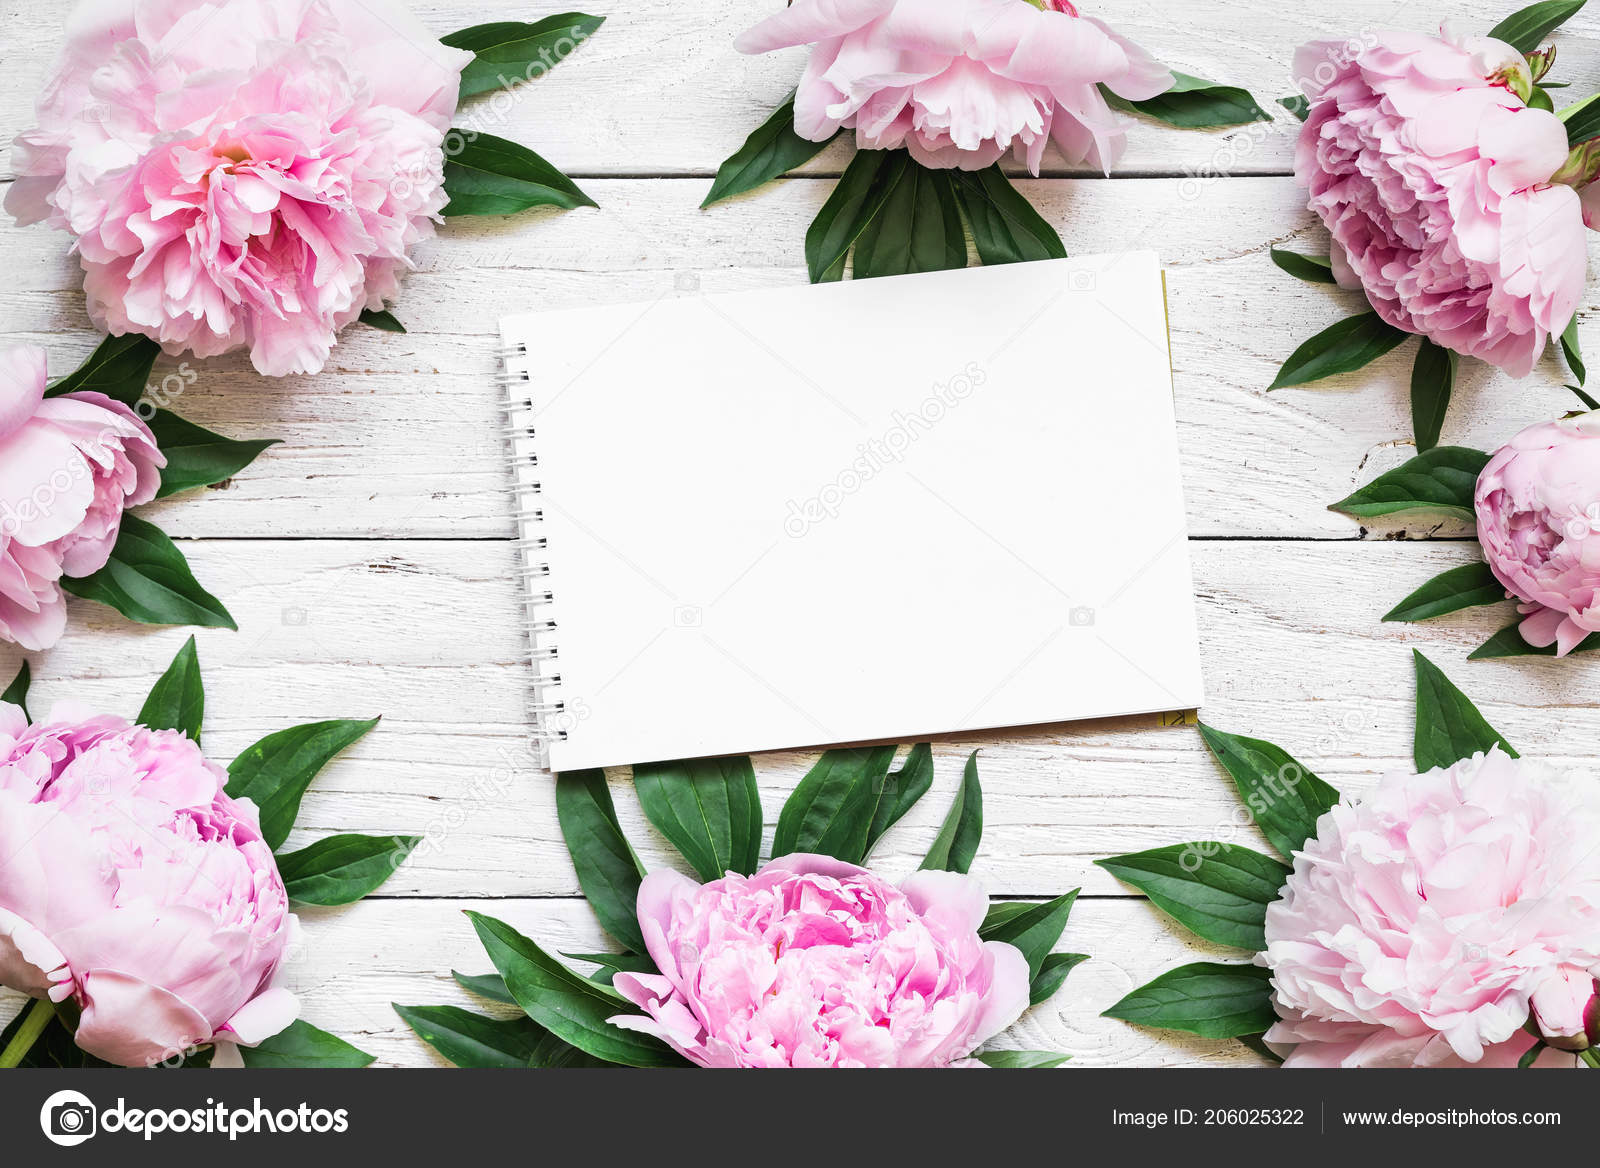 Blank Greeting Card Frame Made Pink Peony Flowers White Wooden